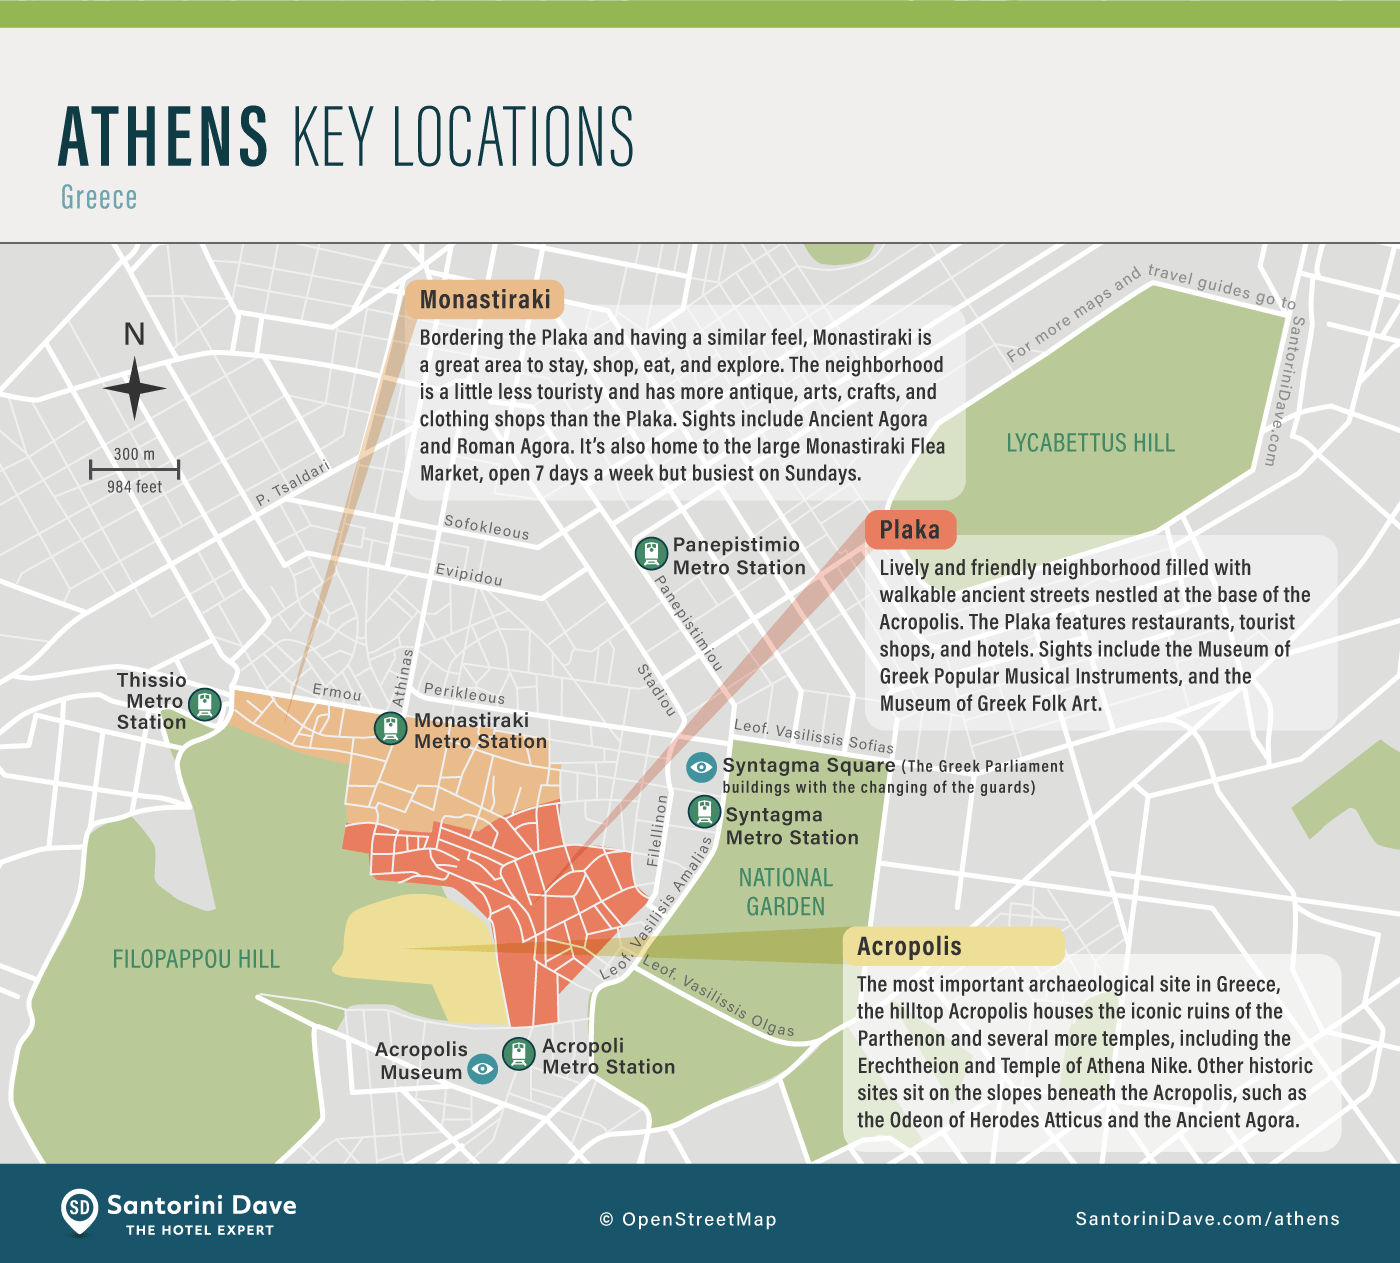 Map showing the top areas and attractions in Athens, Greece